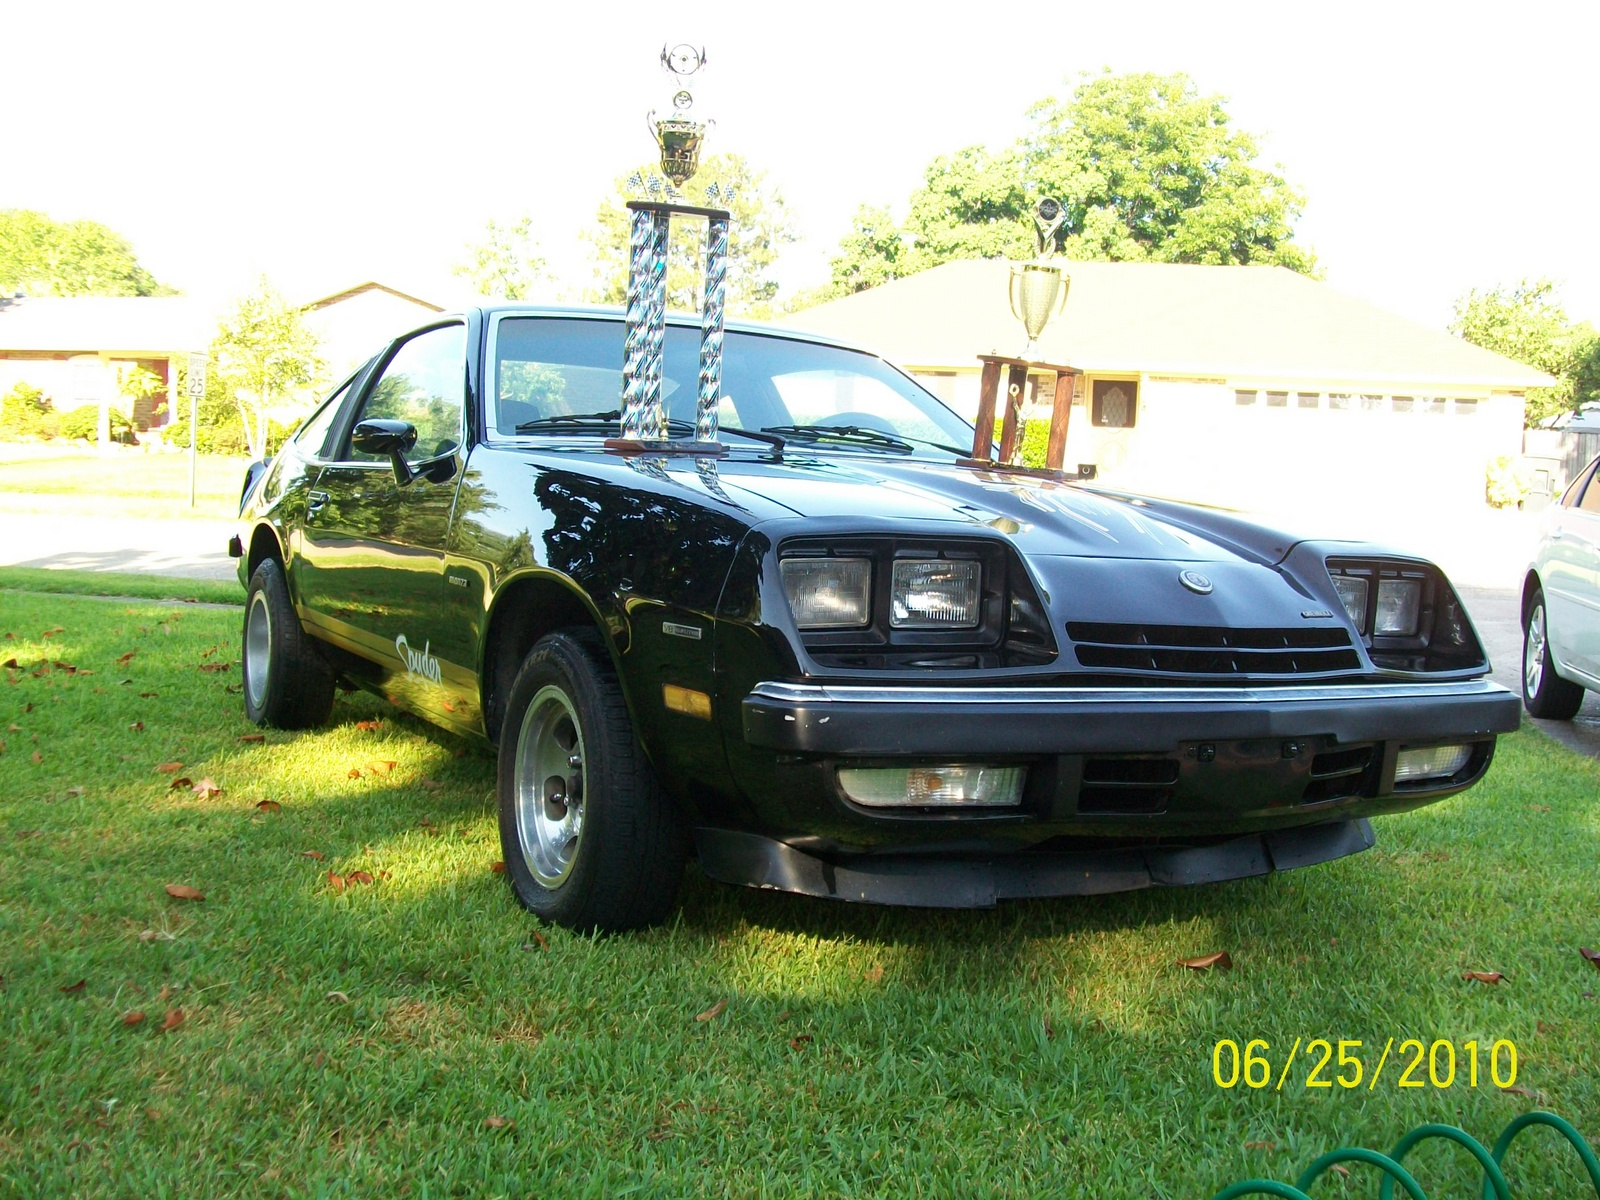 Chevrolet monza 1979 photo - 4